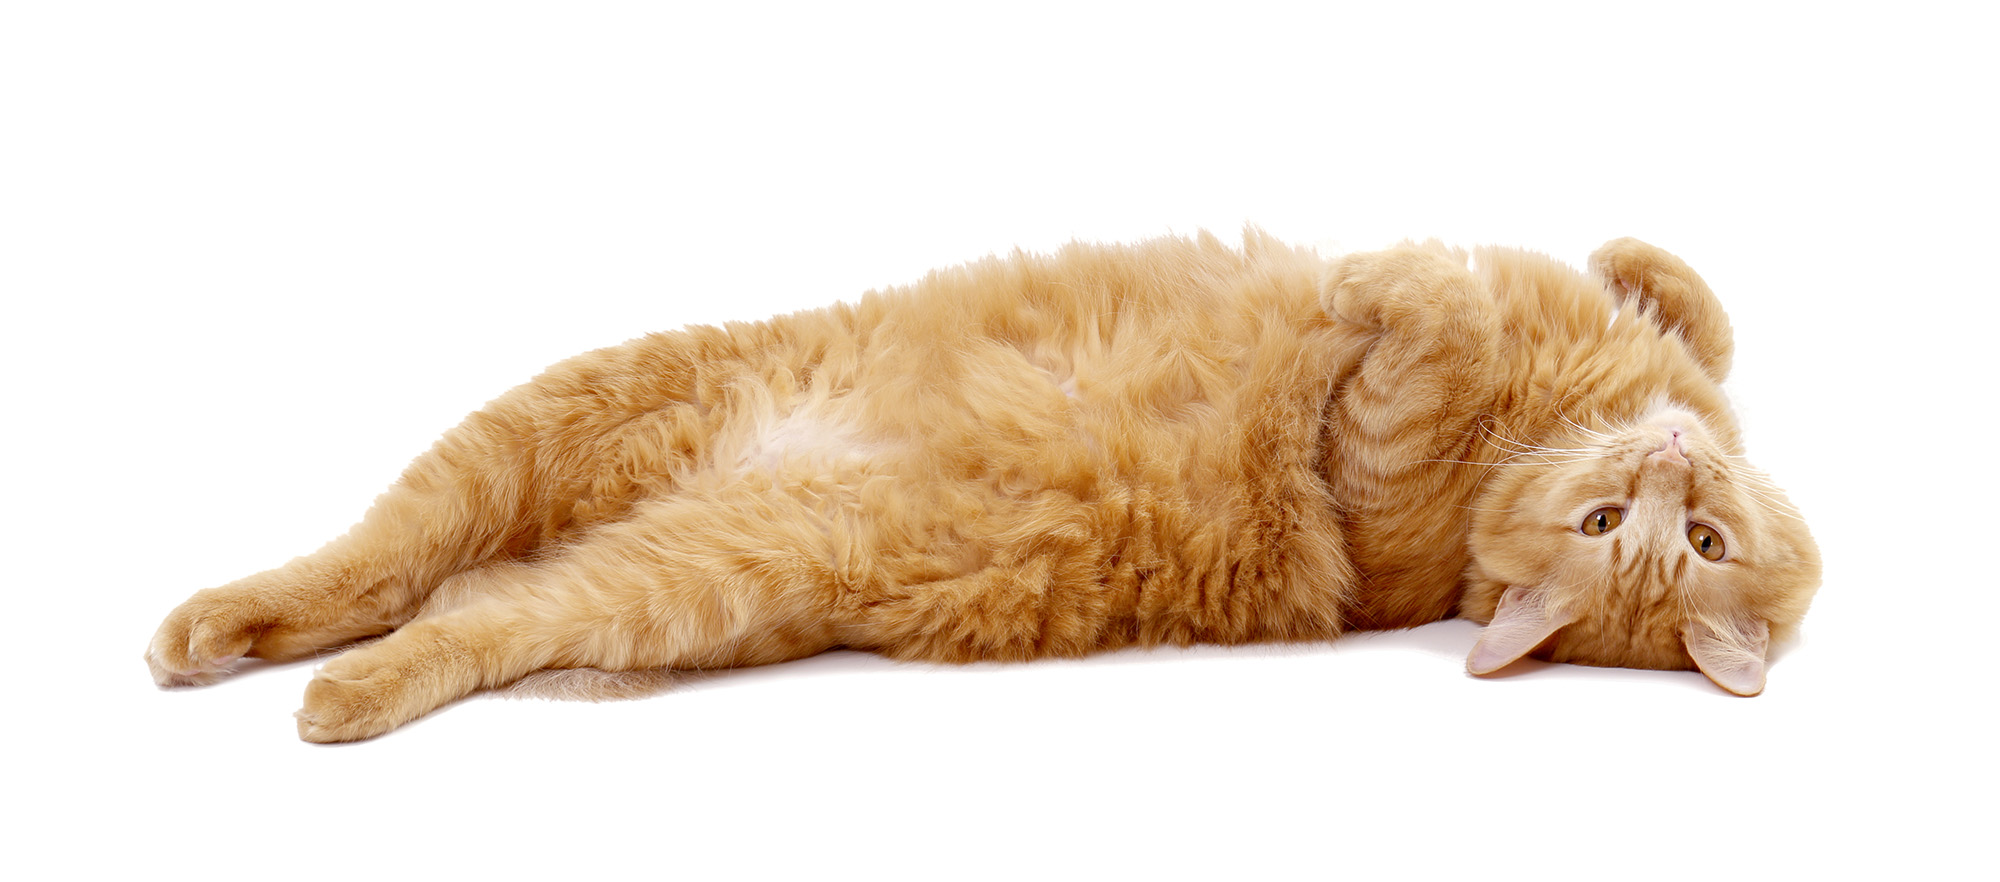 The ginger tabby cat lying on the white background.